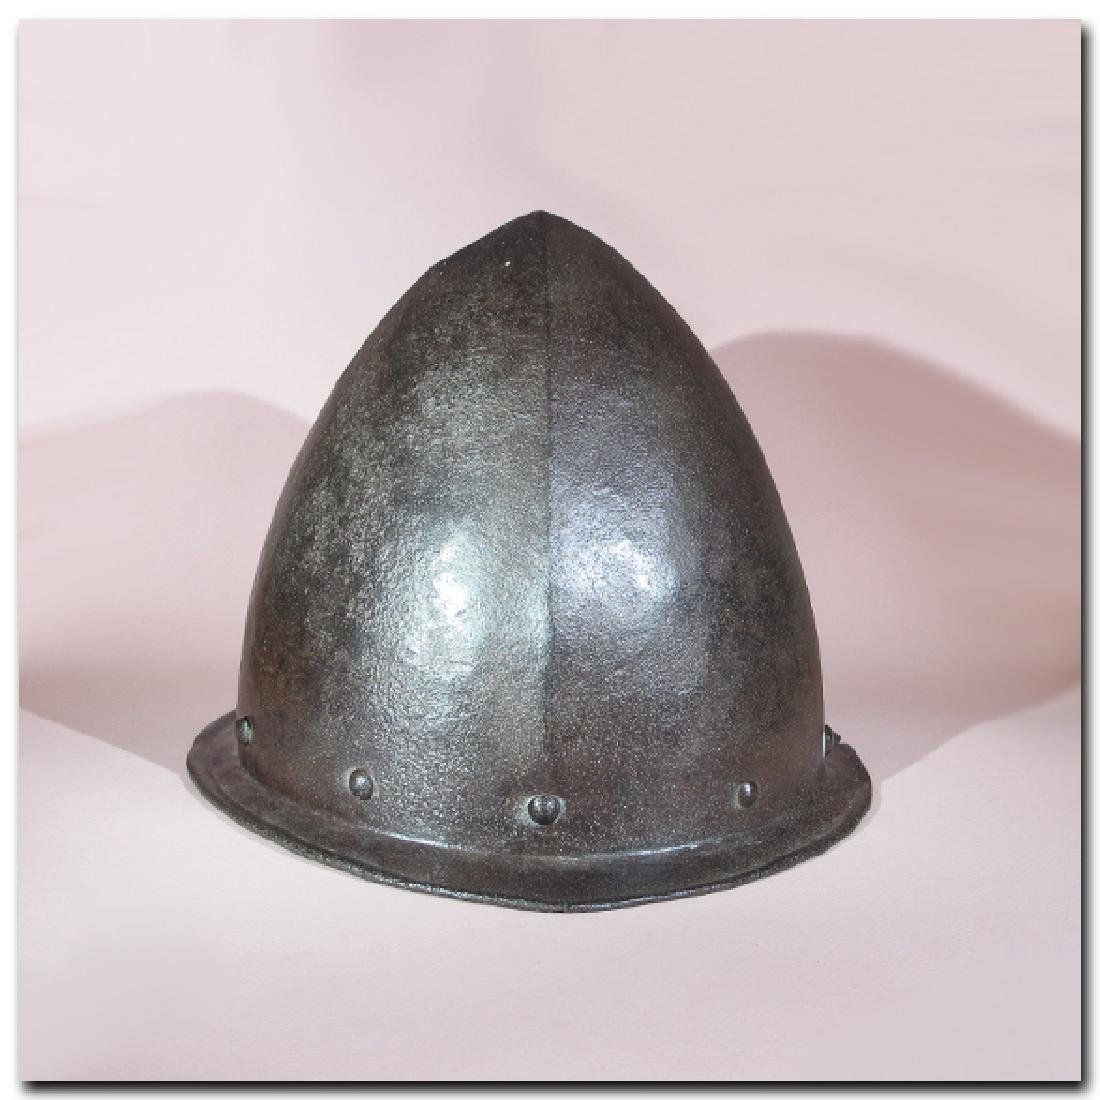 Spanish Steel Cabasset Helmet, 16th Century A.D. - 3